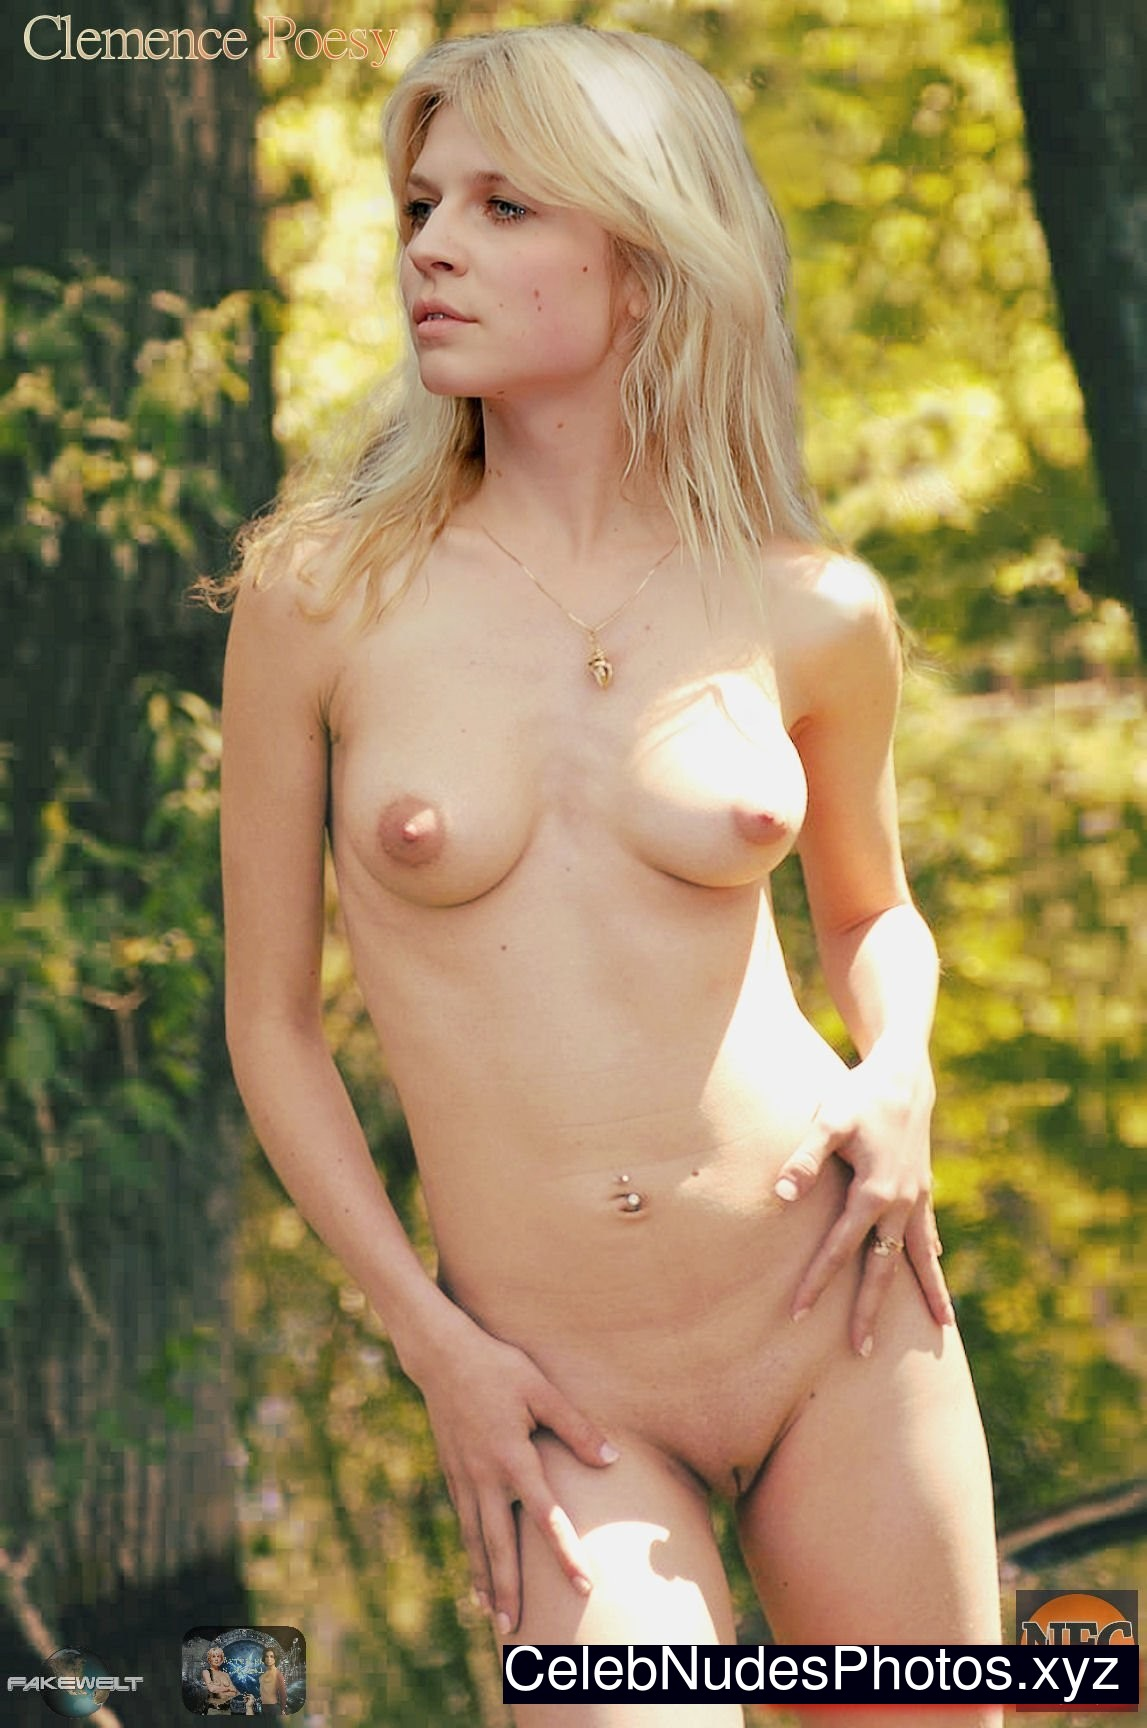 Clemence nude poesy harry potter